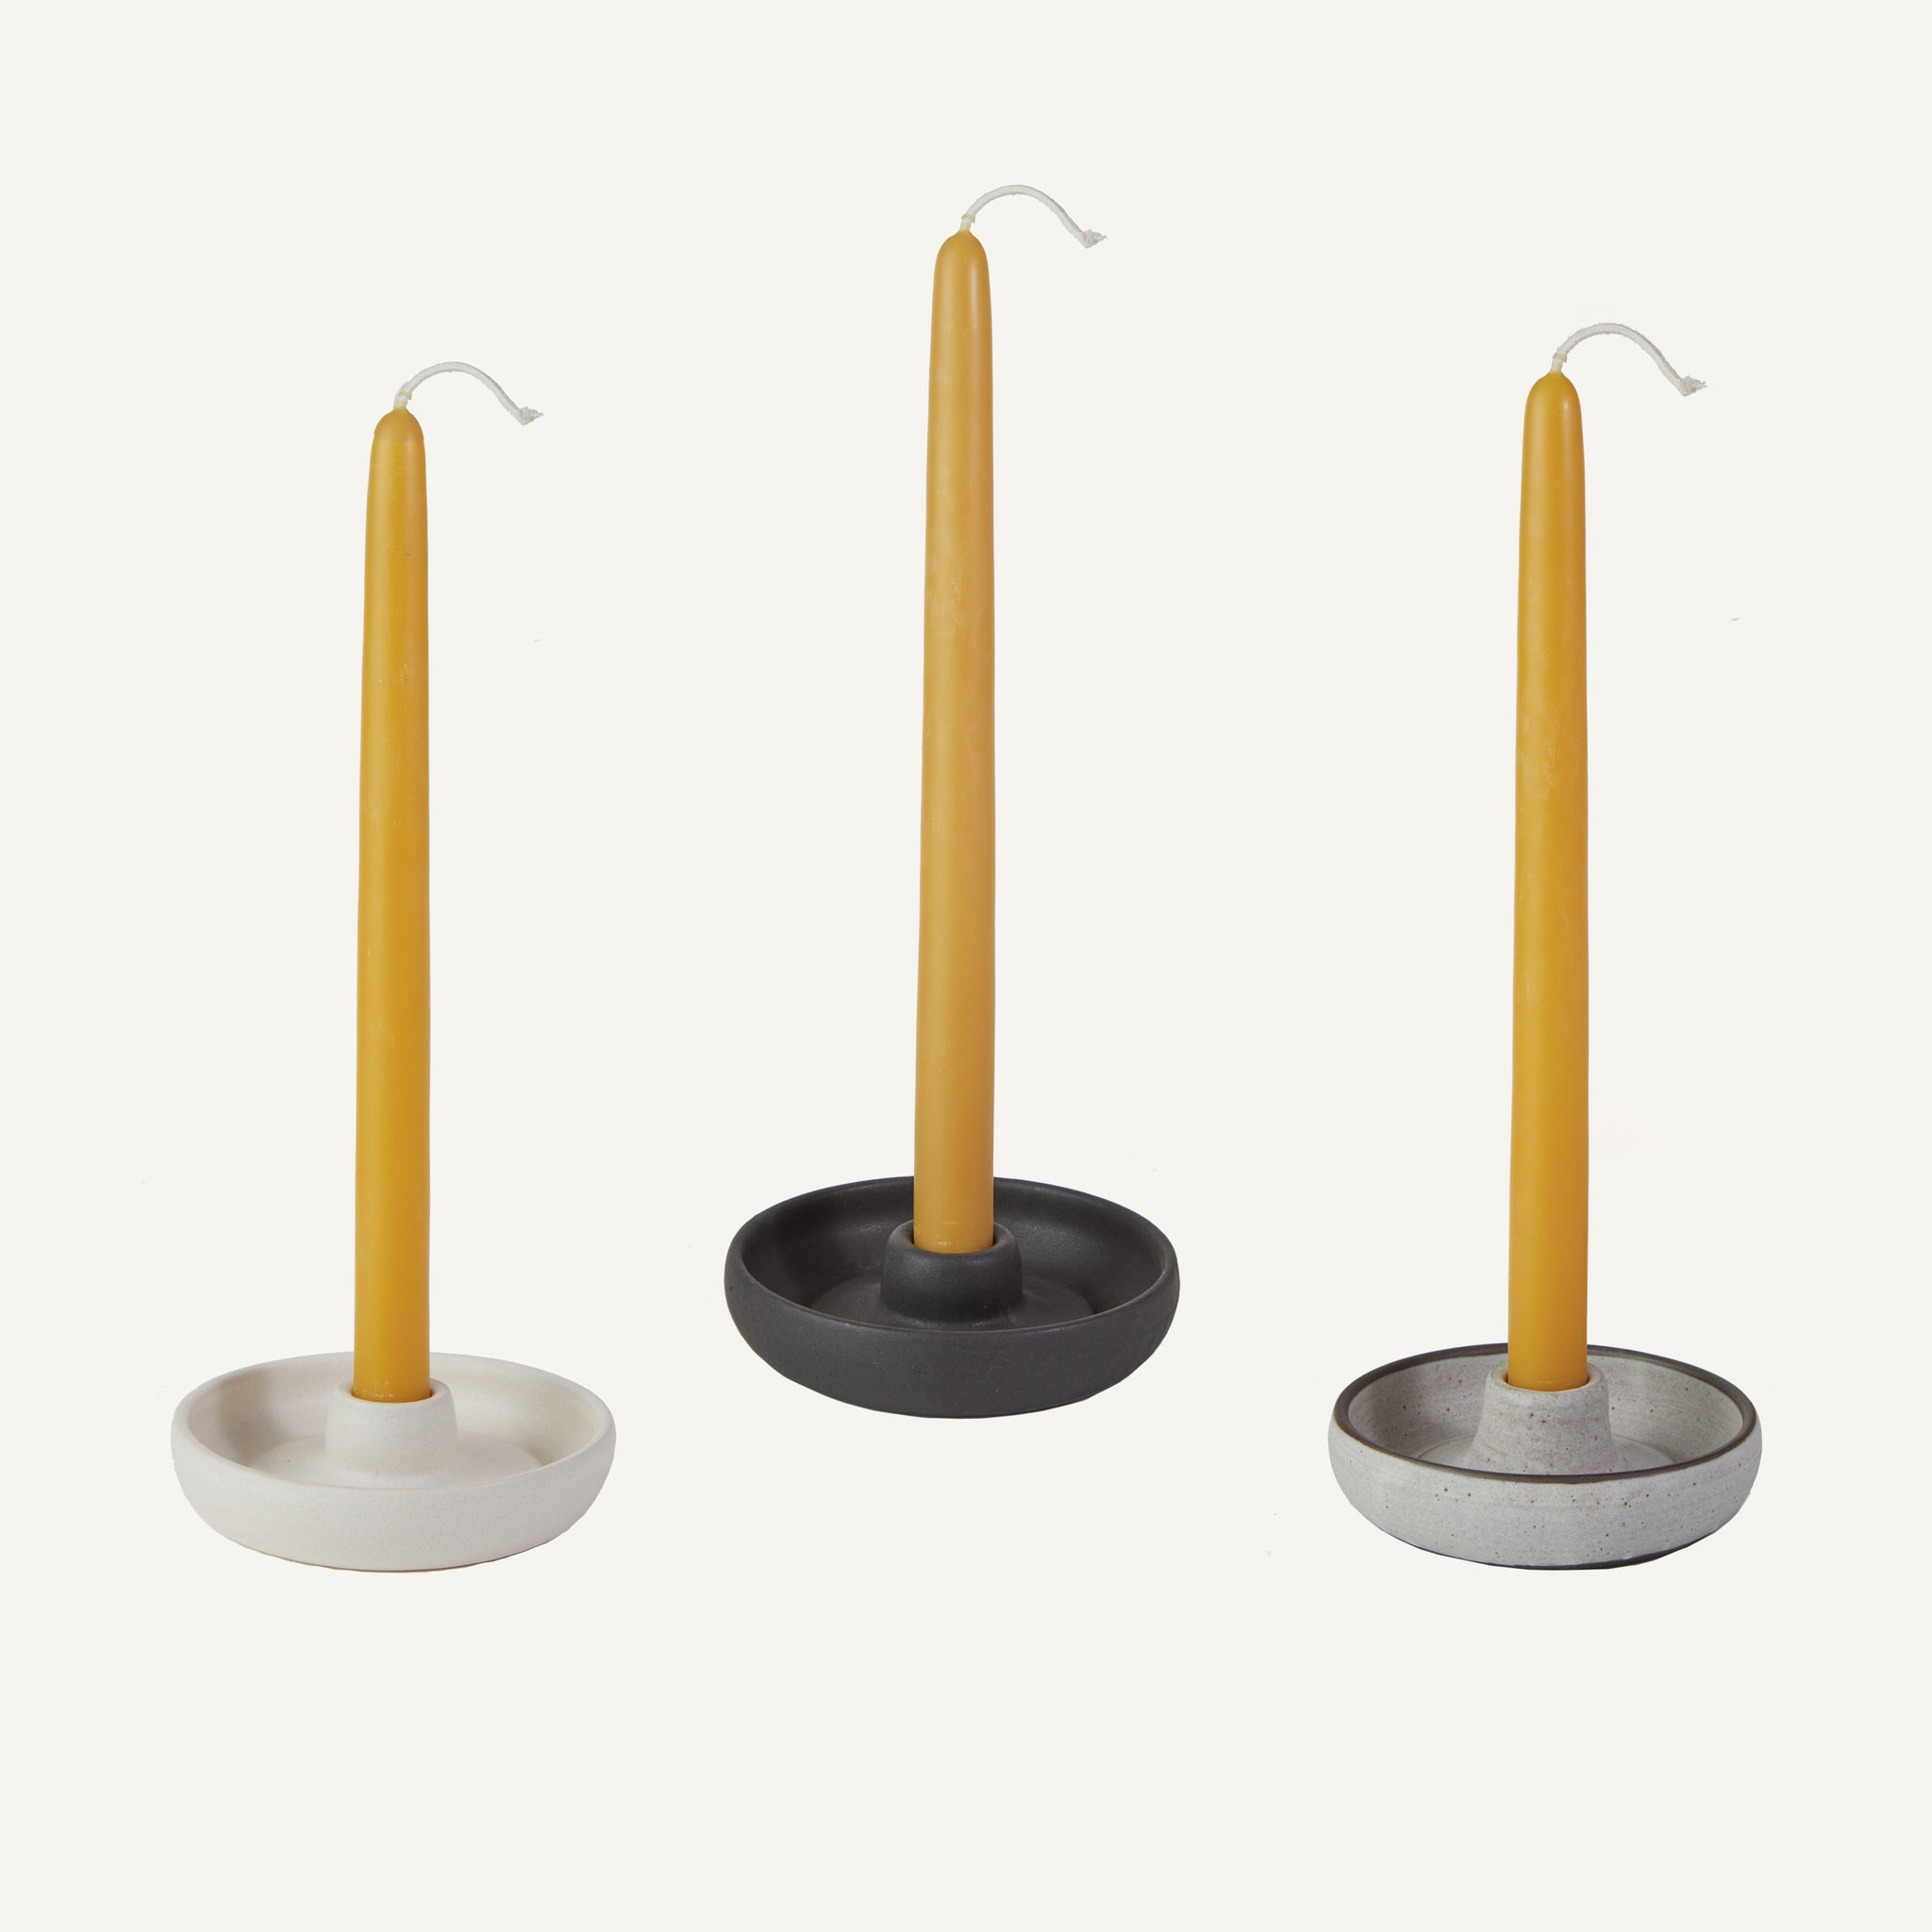 GRANDMONT STREET + PLAIN GOODS CANDLE HOLDER